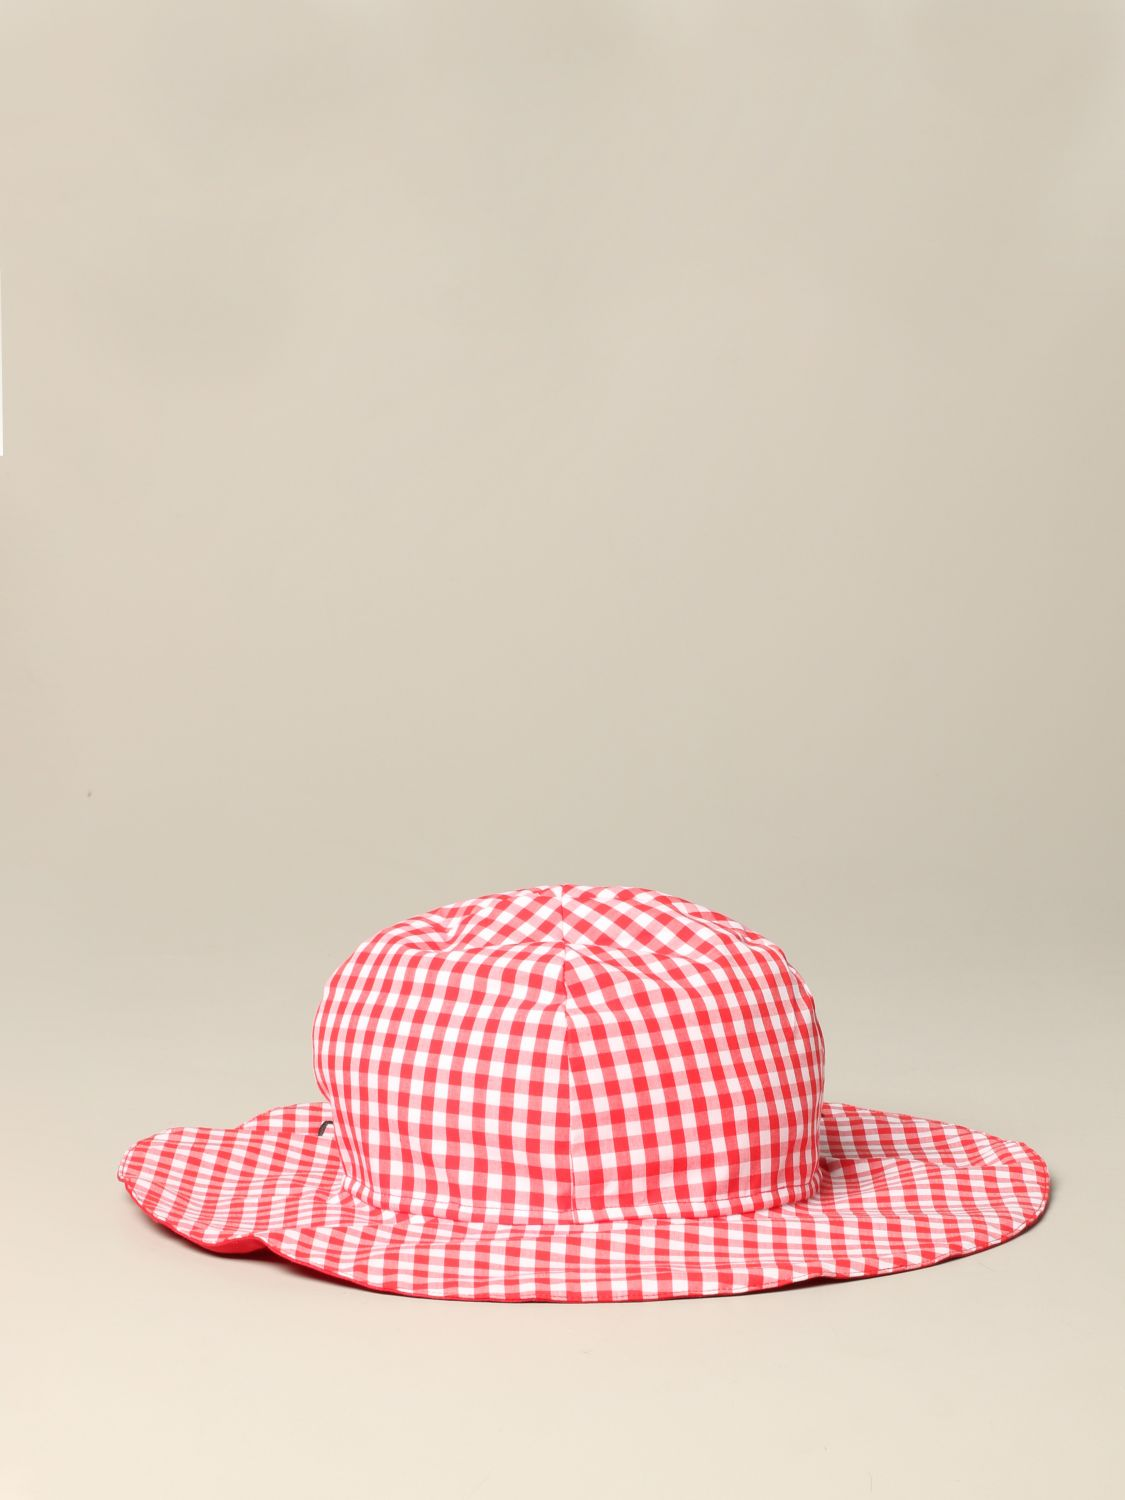 Sonia Rykiel checkered hat with logo red 3